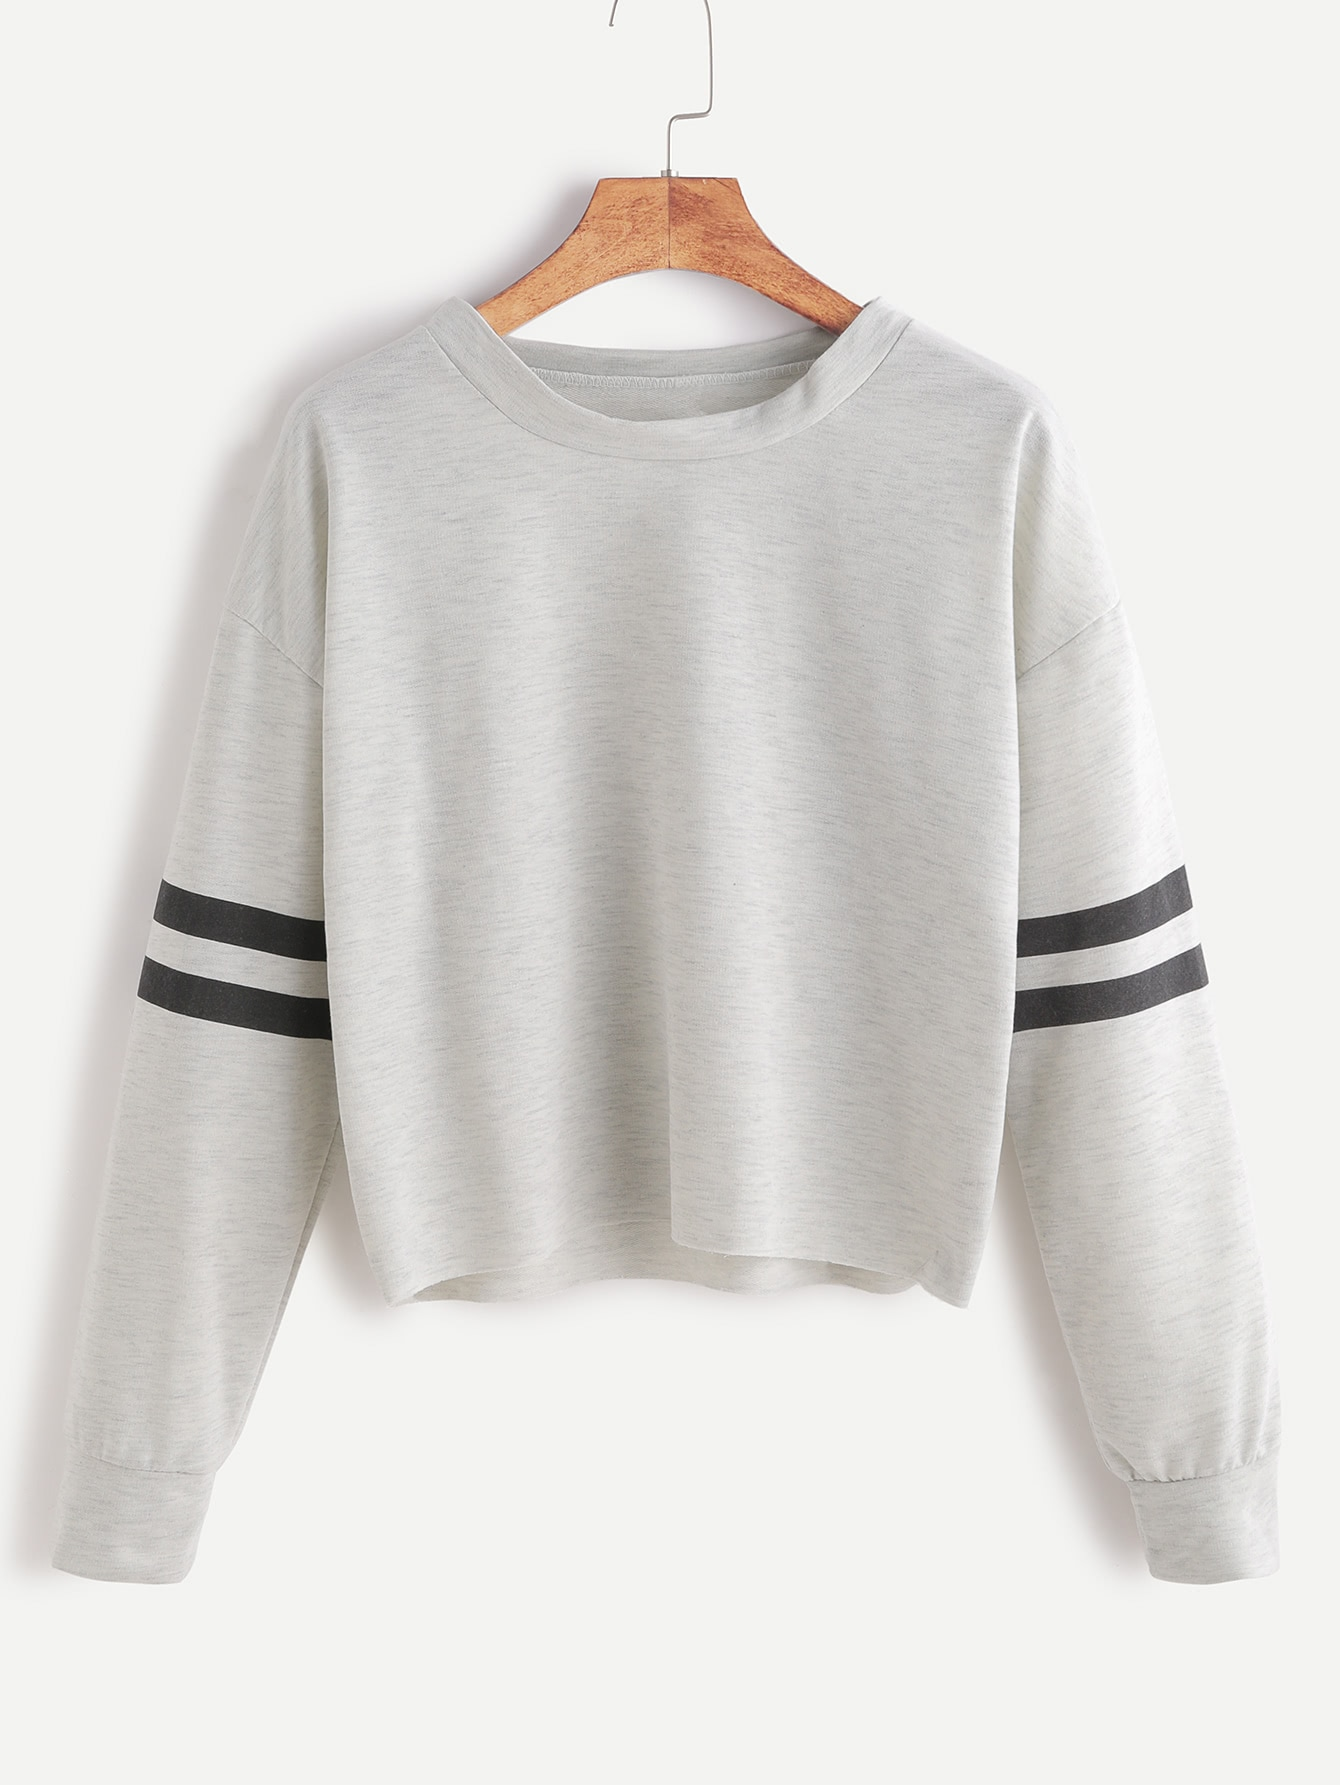 Heather Grey Drop Shoulder Varsity Striped Crop T-shirt RTSH161104106